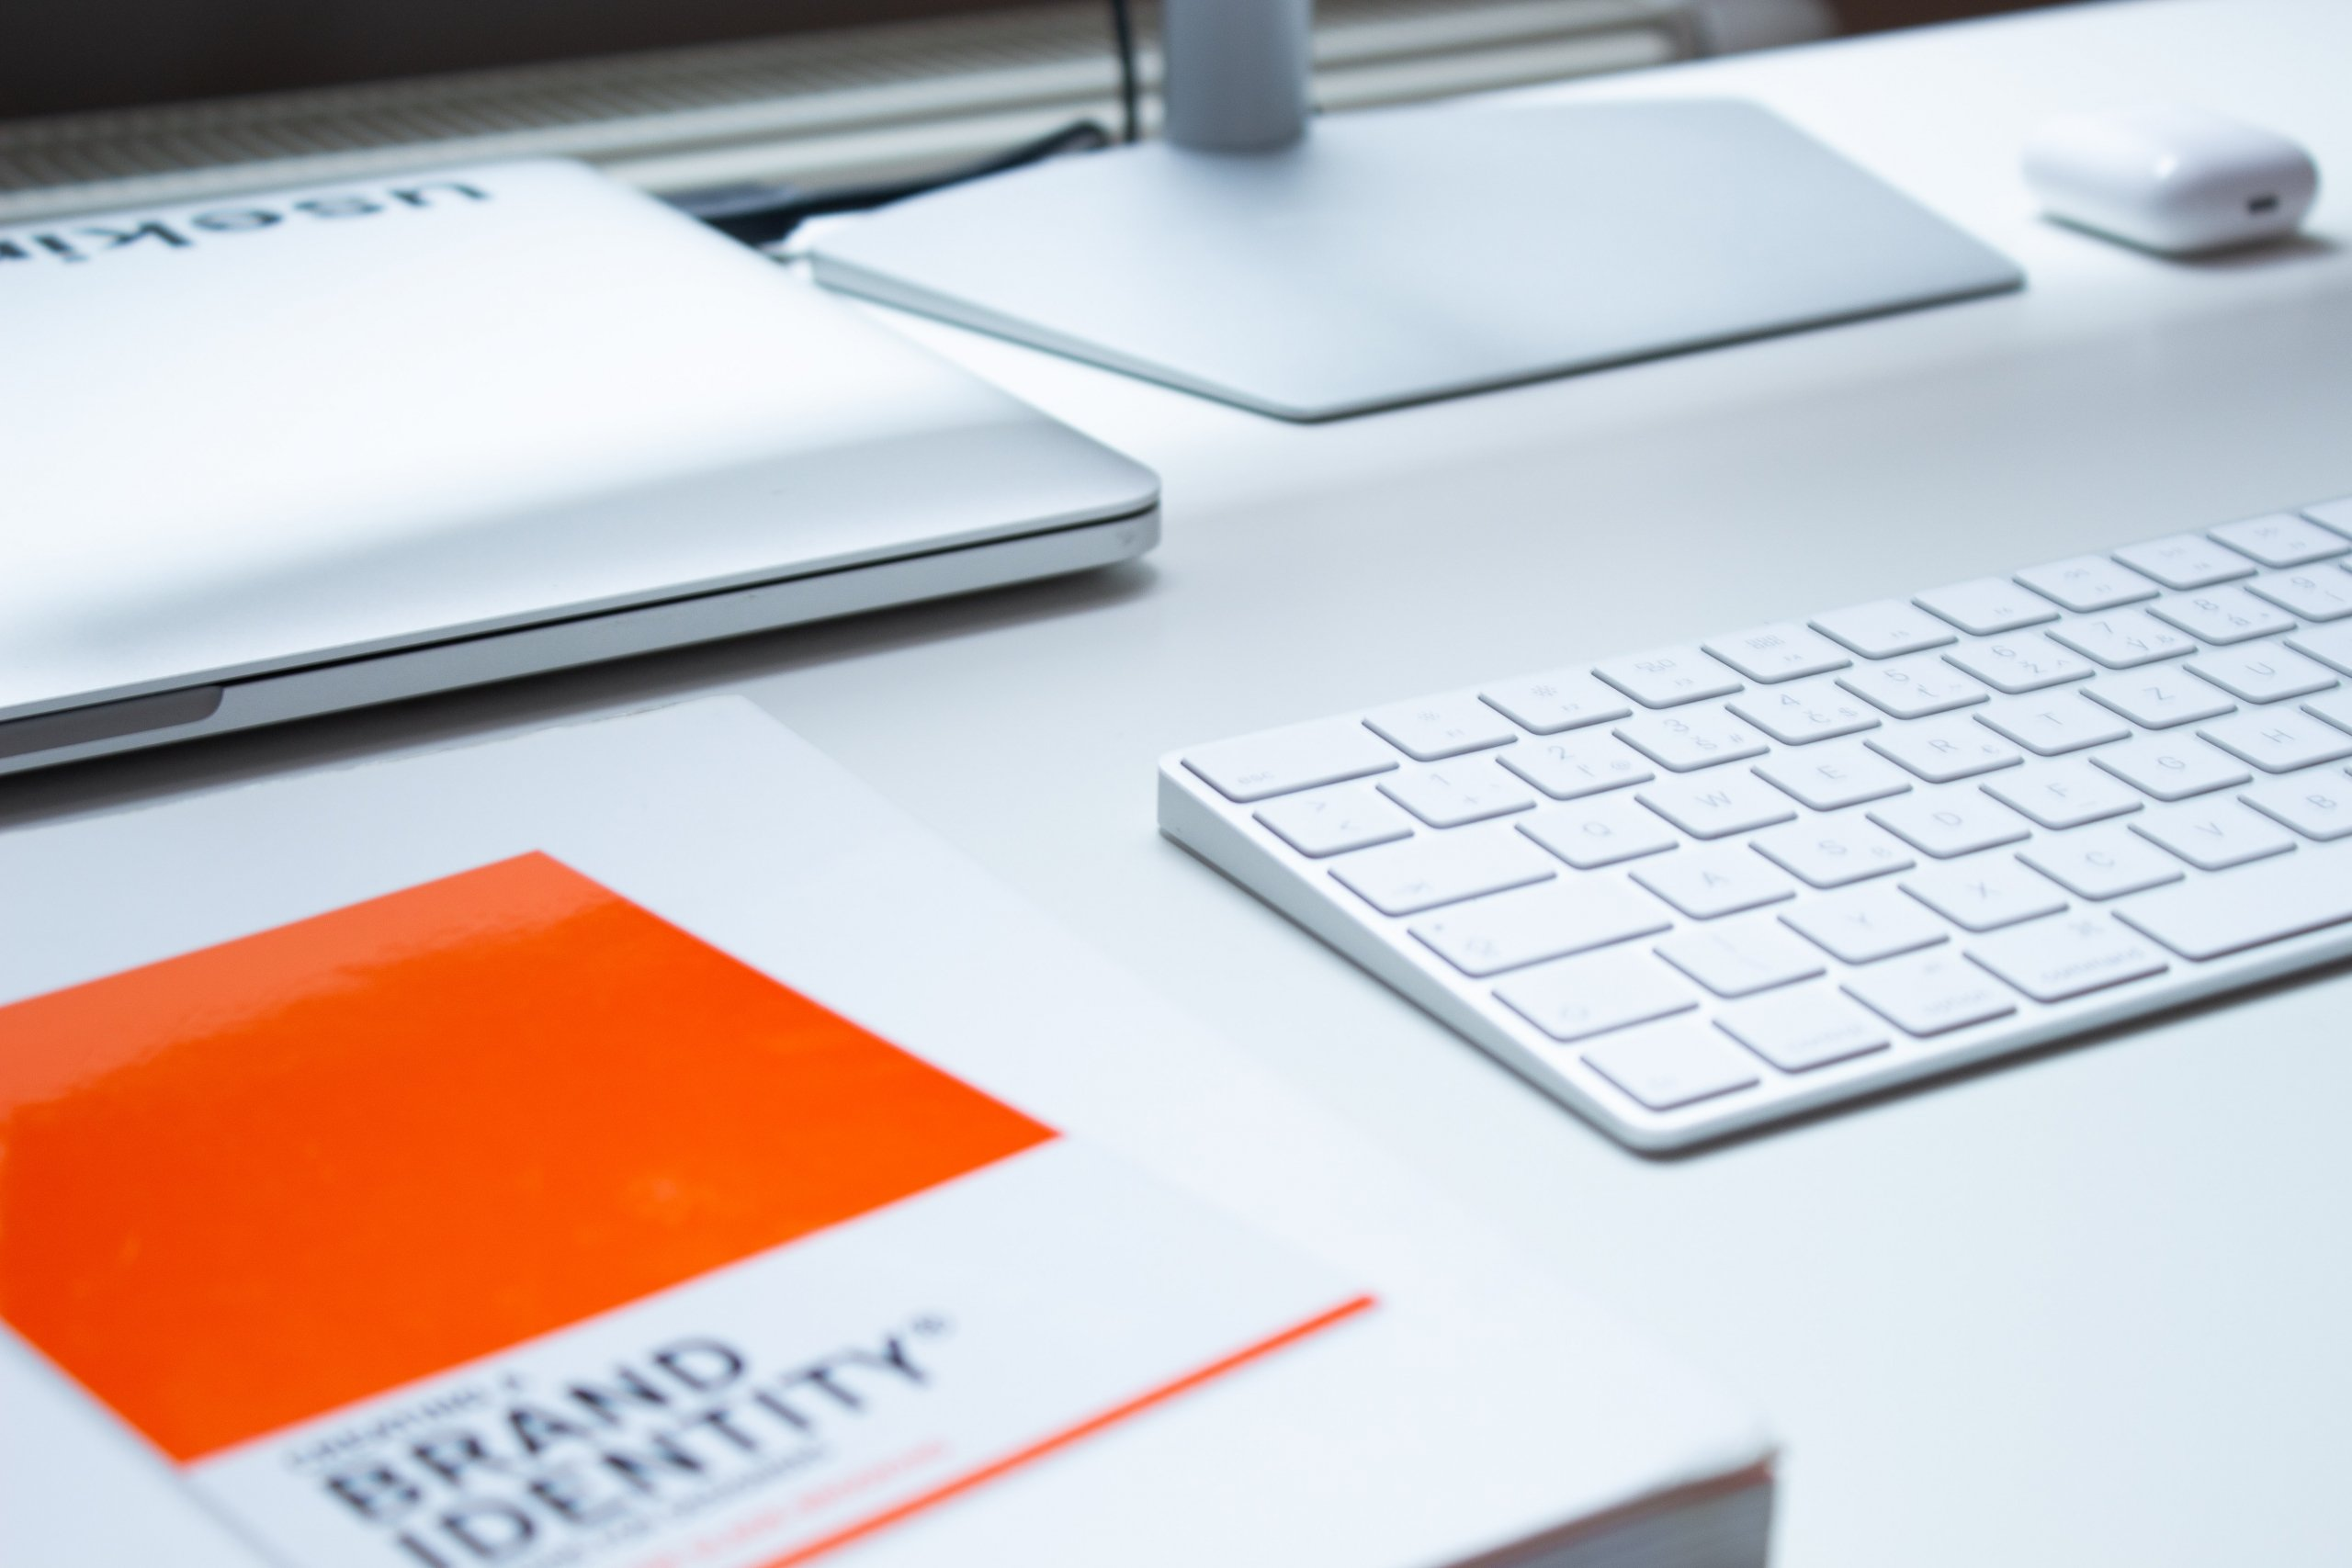 brand identity book on a desk with a computer and keyboard